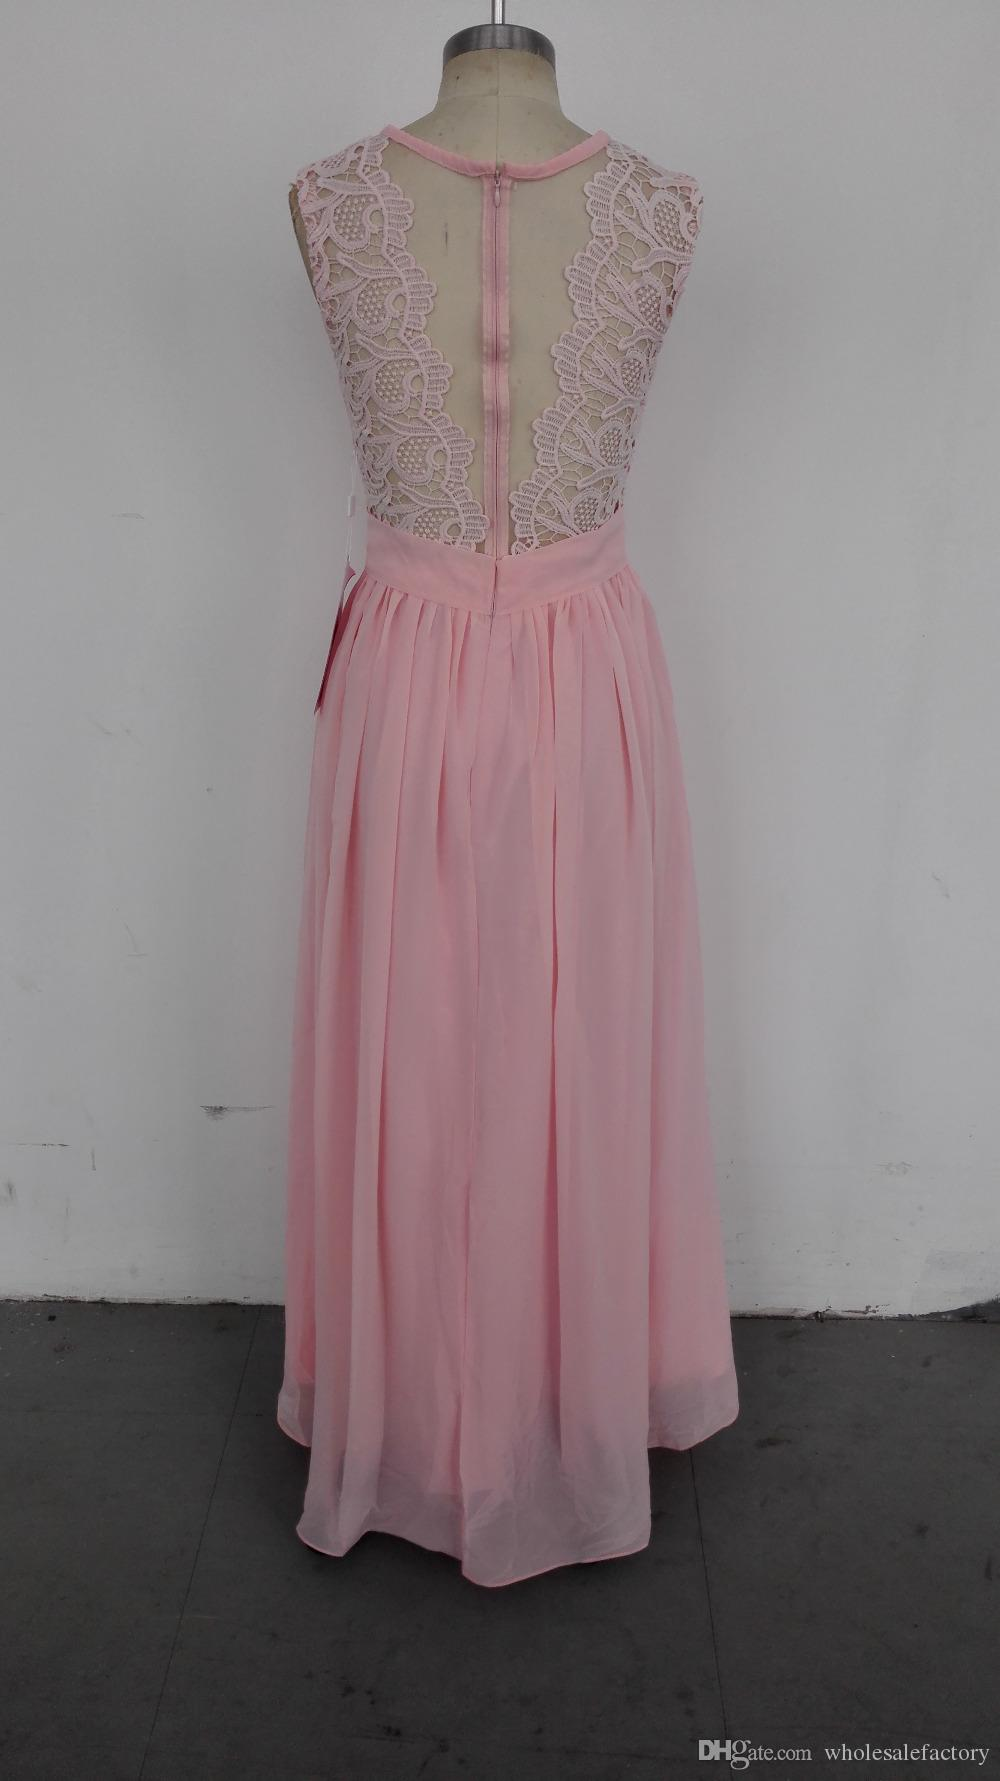 Real Image Pink Mint Long Bridesmaid Dresses Lace A Line Sleeveless Wedding Guest Party Dresses Summer Boho Maid of Honor Prom Dresses